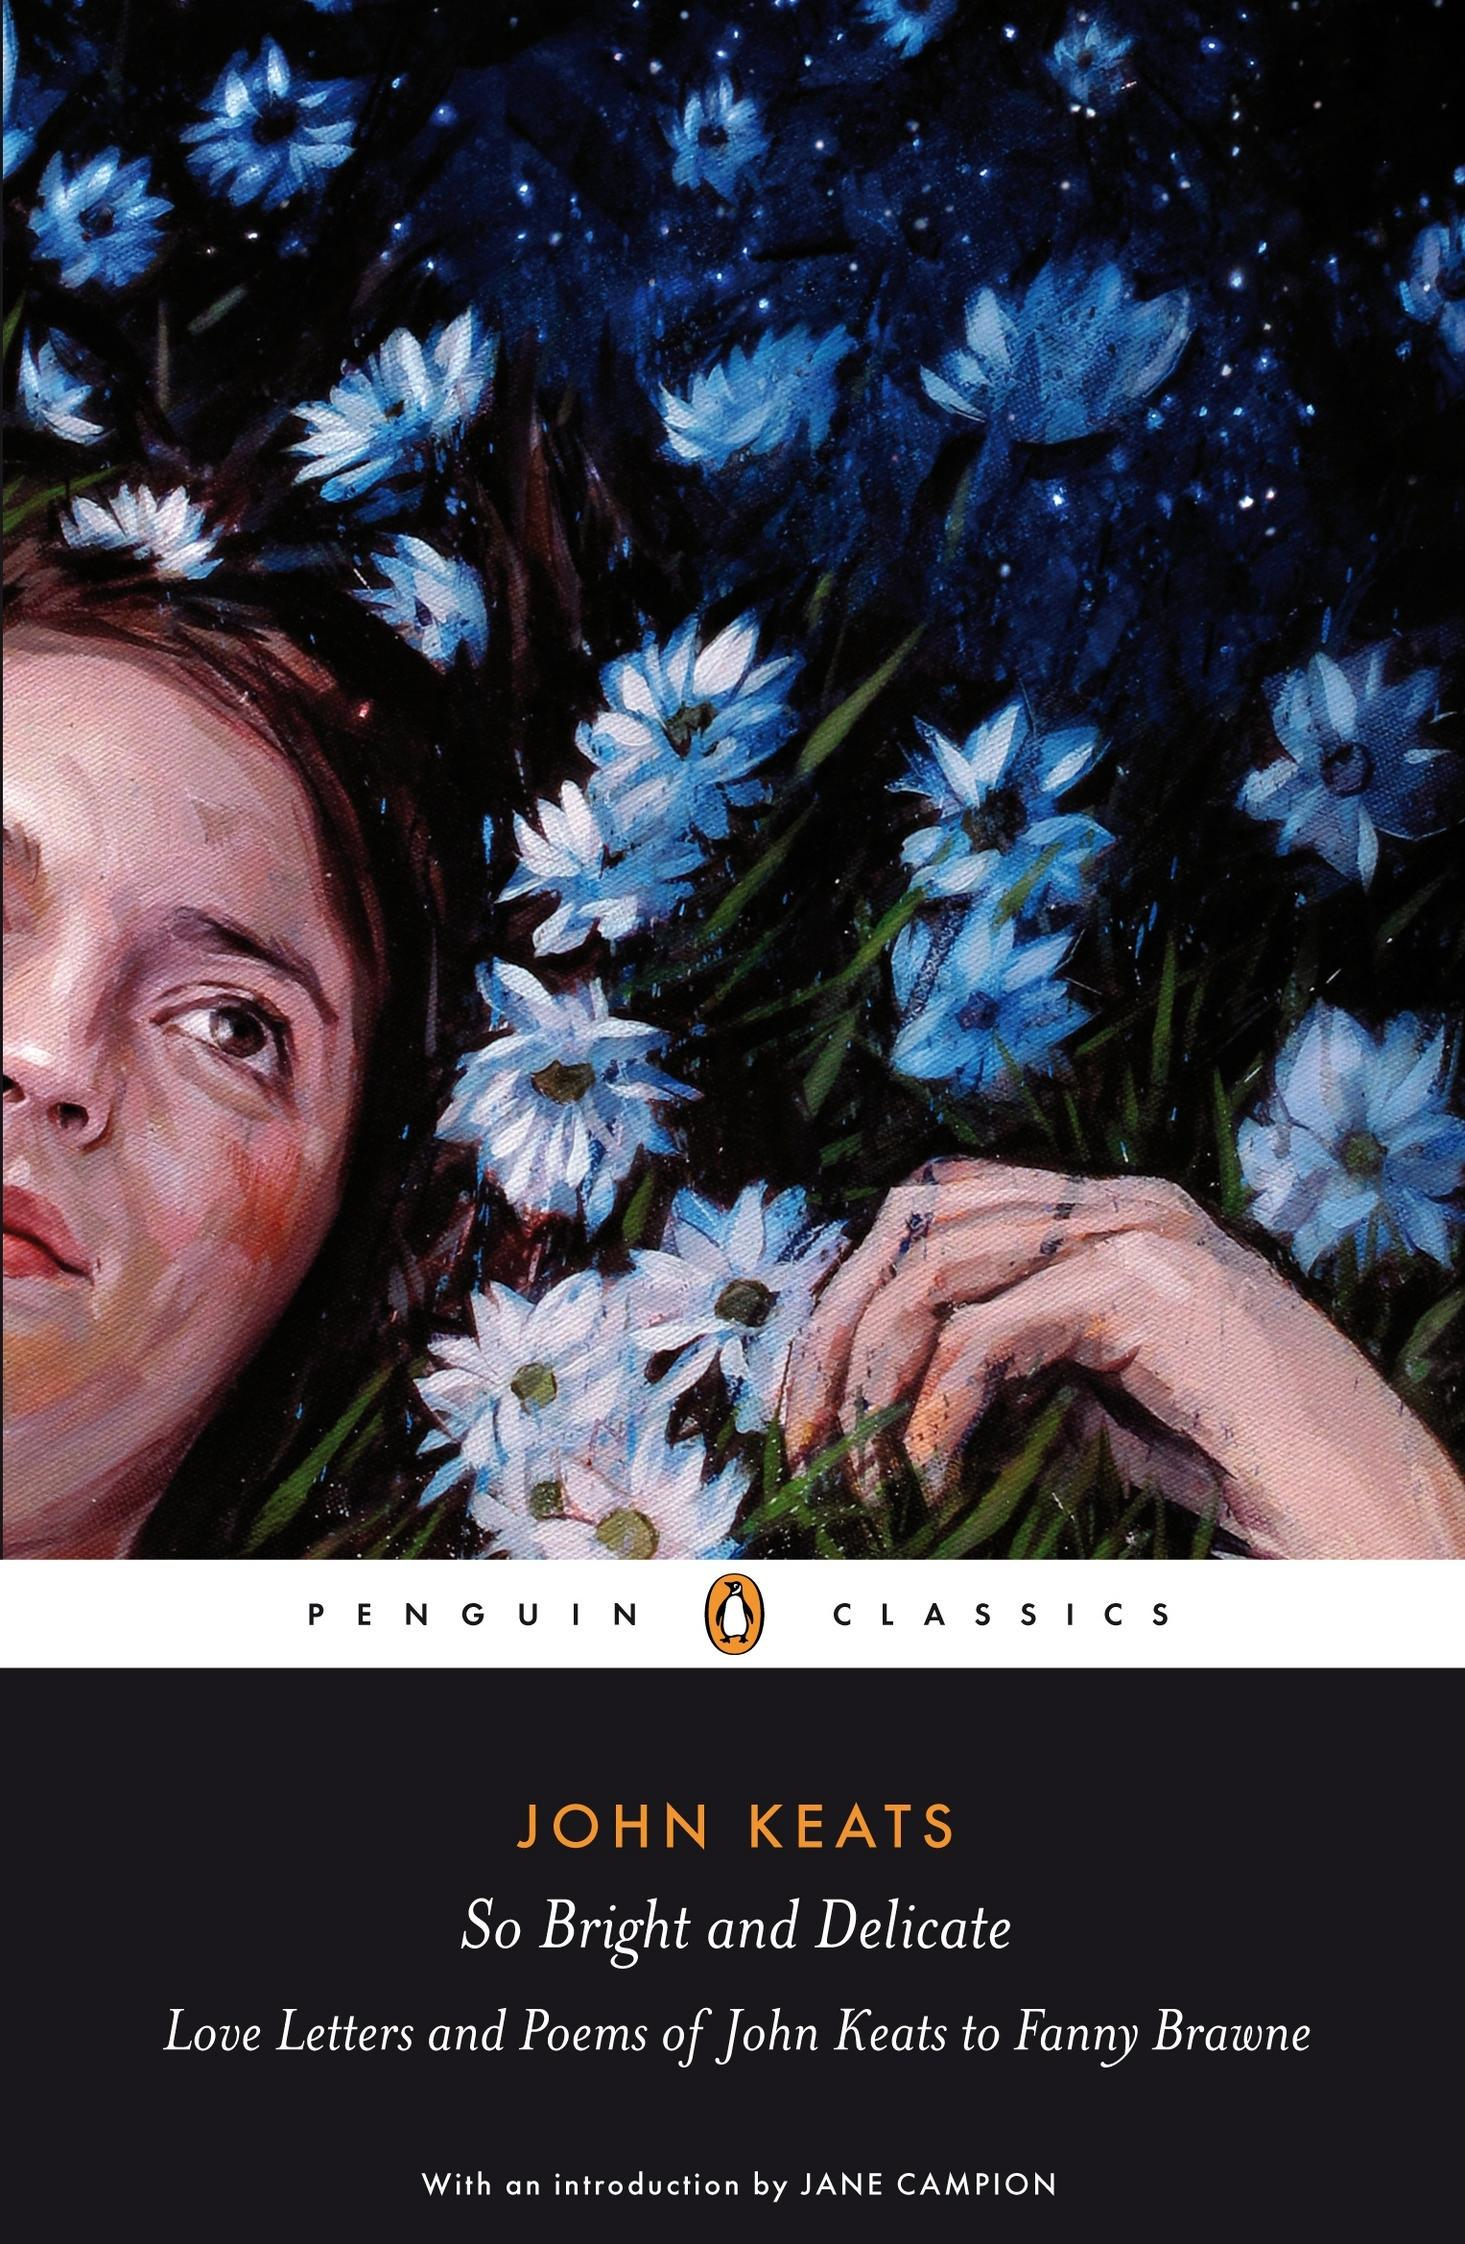 So Bright and Delicate by John Keats